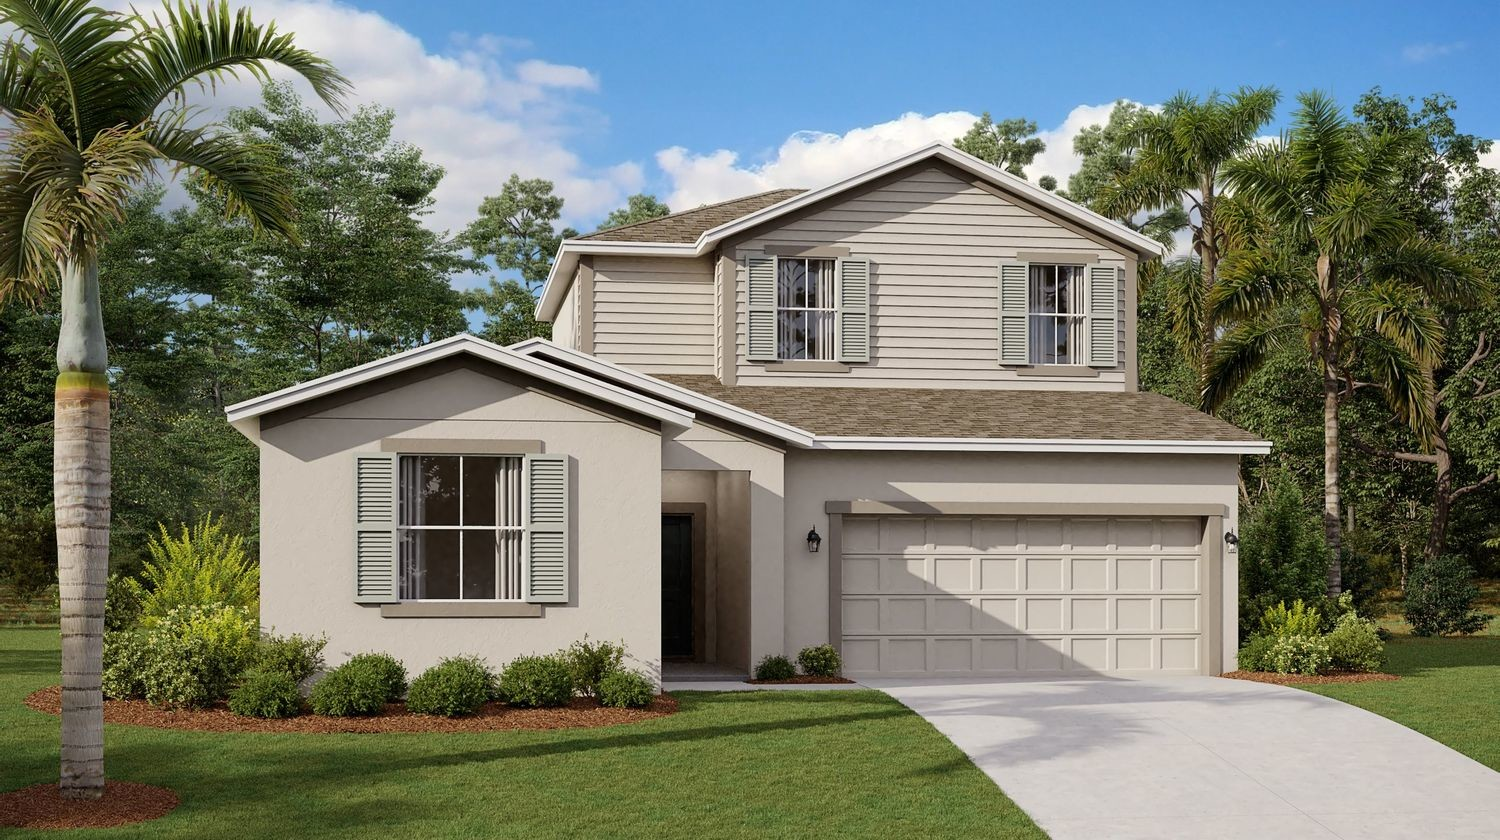 Move In Ready New Home In Old Hickory - Westfield Collection Community